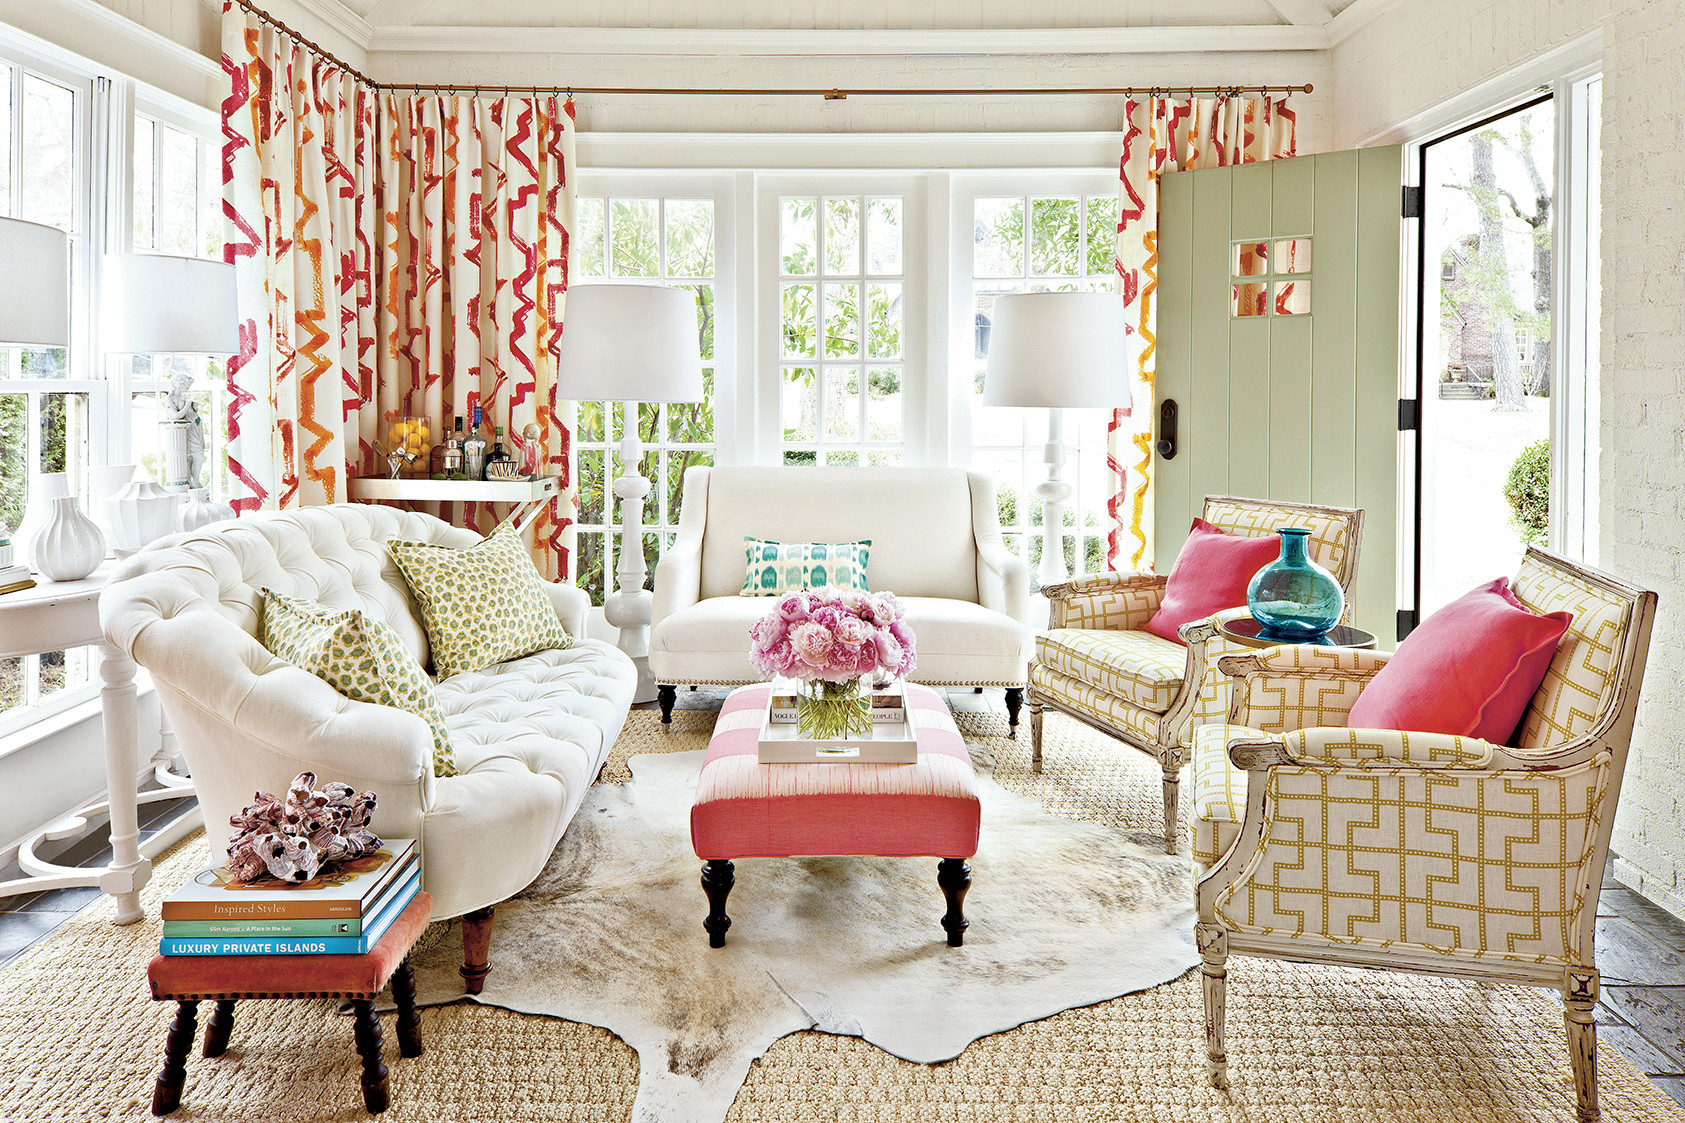 Living Room Decorating Southern Style the essentials of southern girl style decorating lonny laurey w glennsouthern living